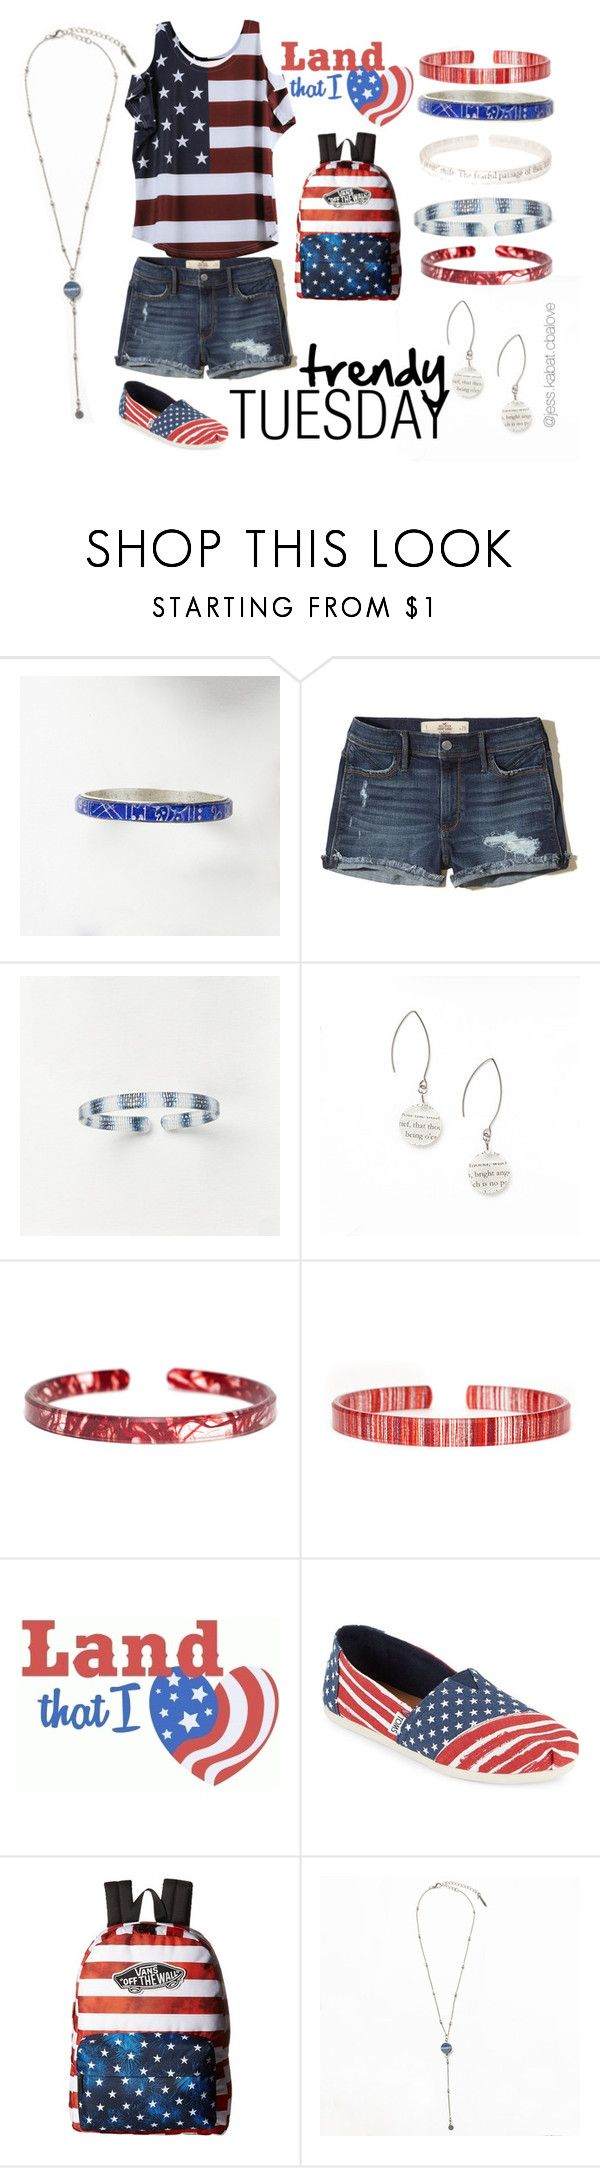 """Land That I Love"" by jessica-kabat on Polyvore featuring AMBRE, Hollister Co., TOMS, Vans, USA, American, patriotic and forthofjuly"